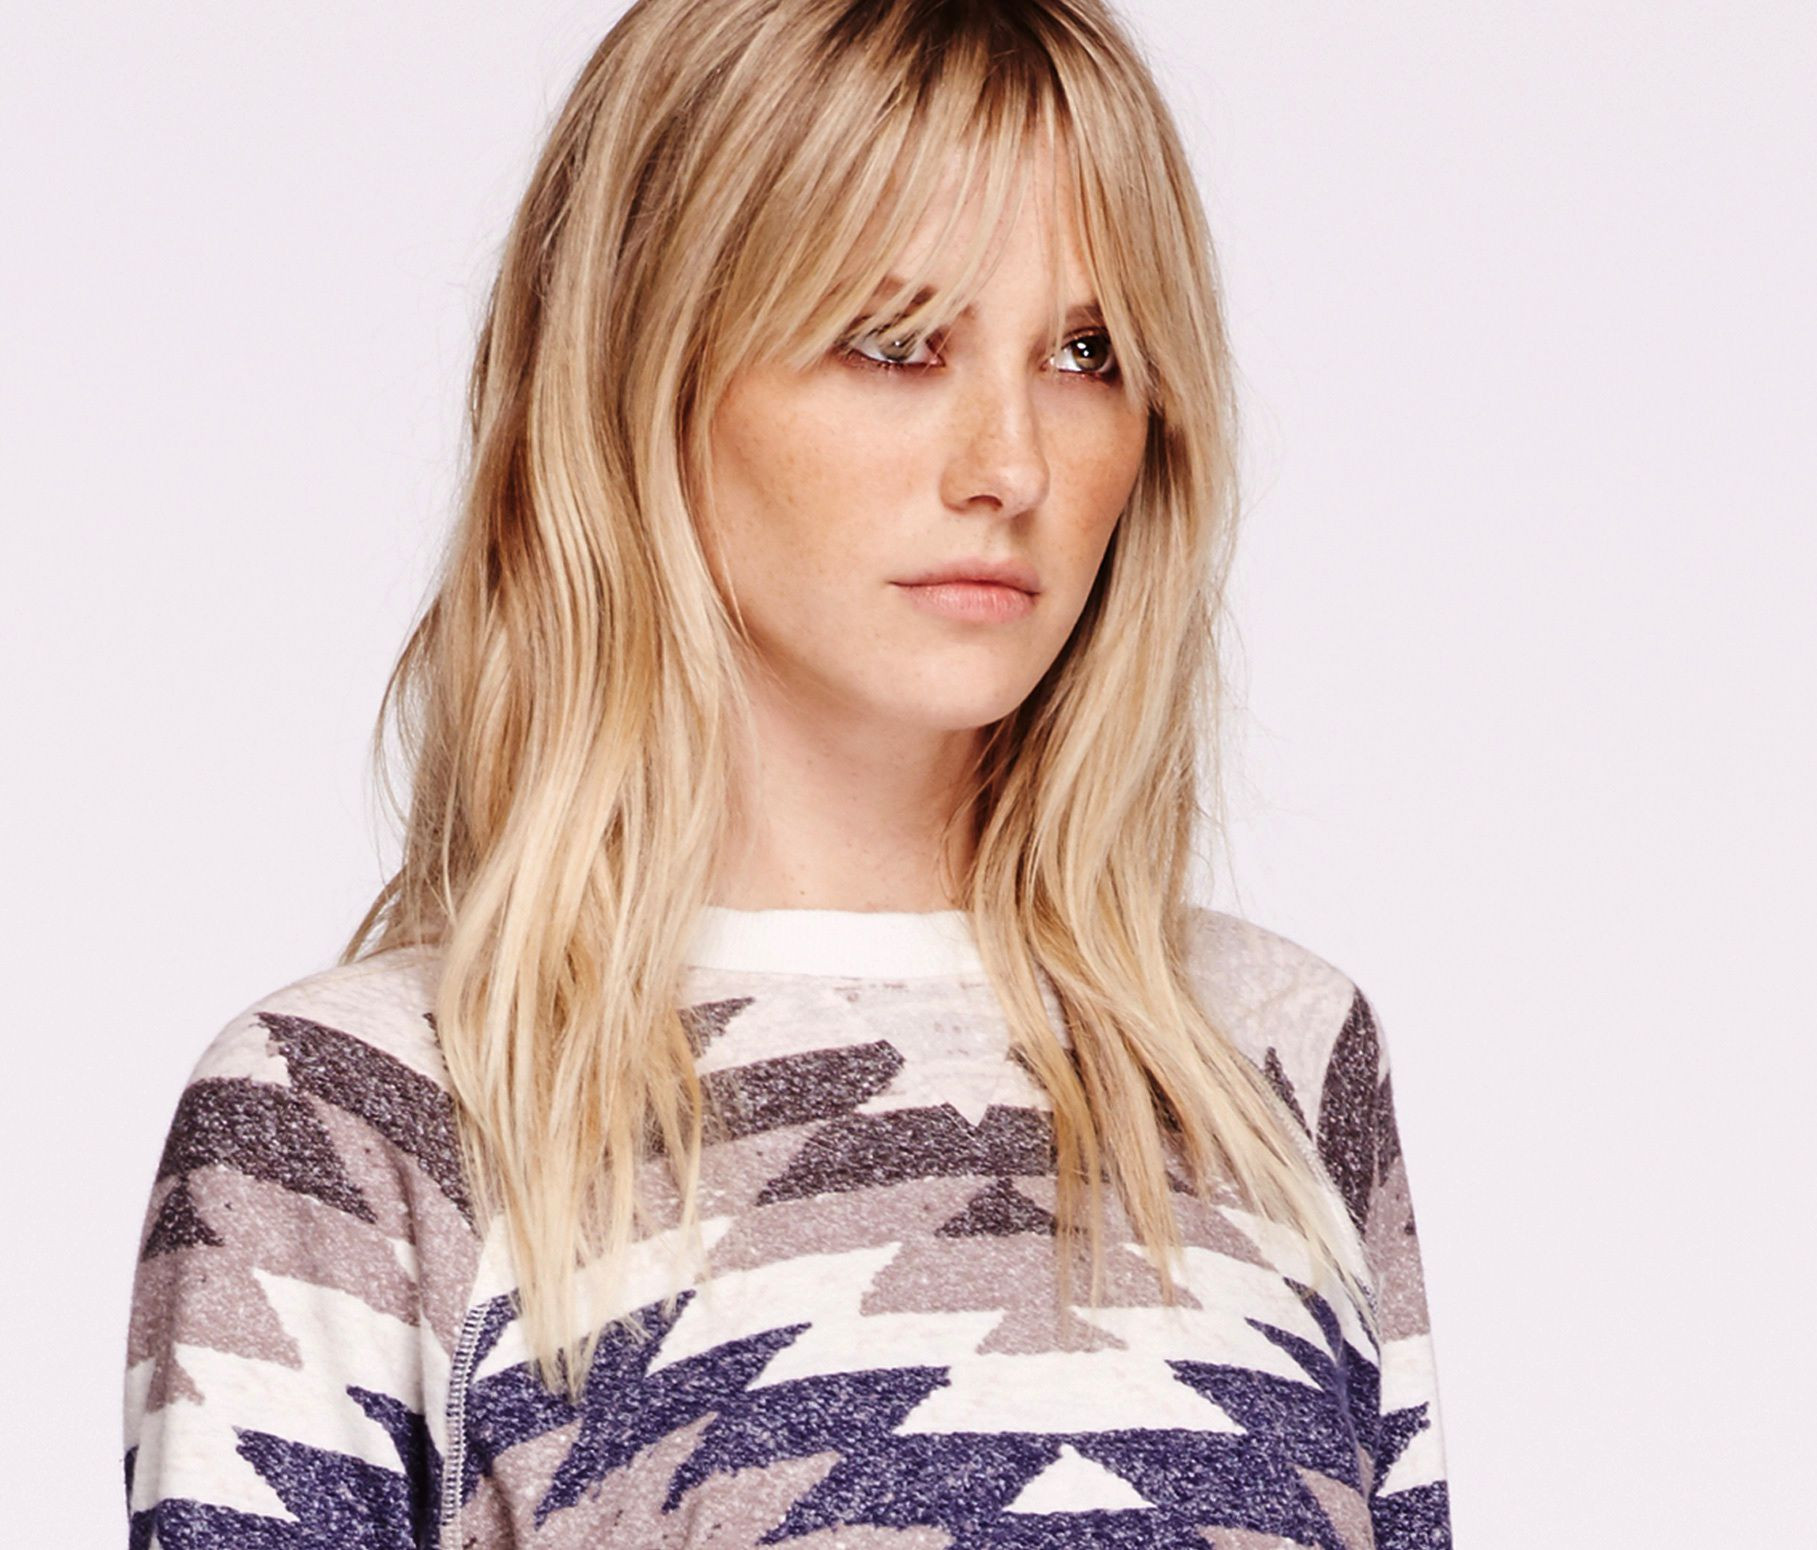 How To Cut Bangs On Long Hair  16 Great Hairstyles With Bangs